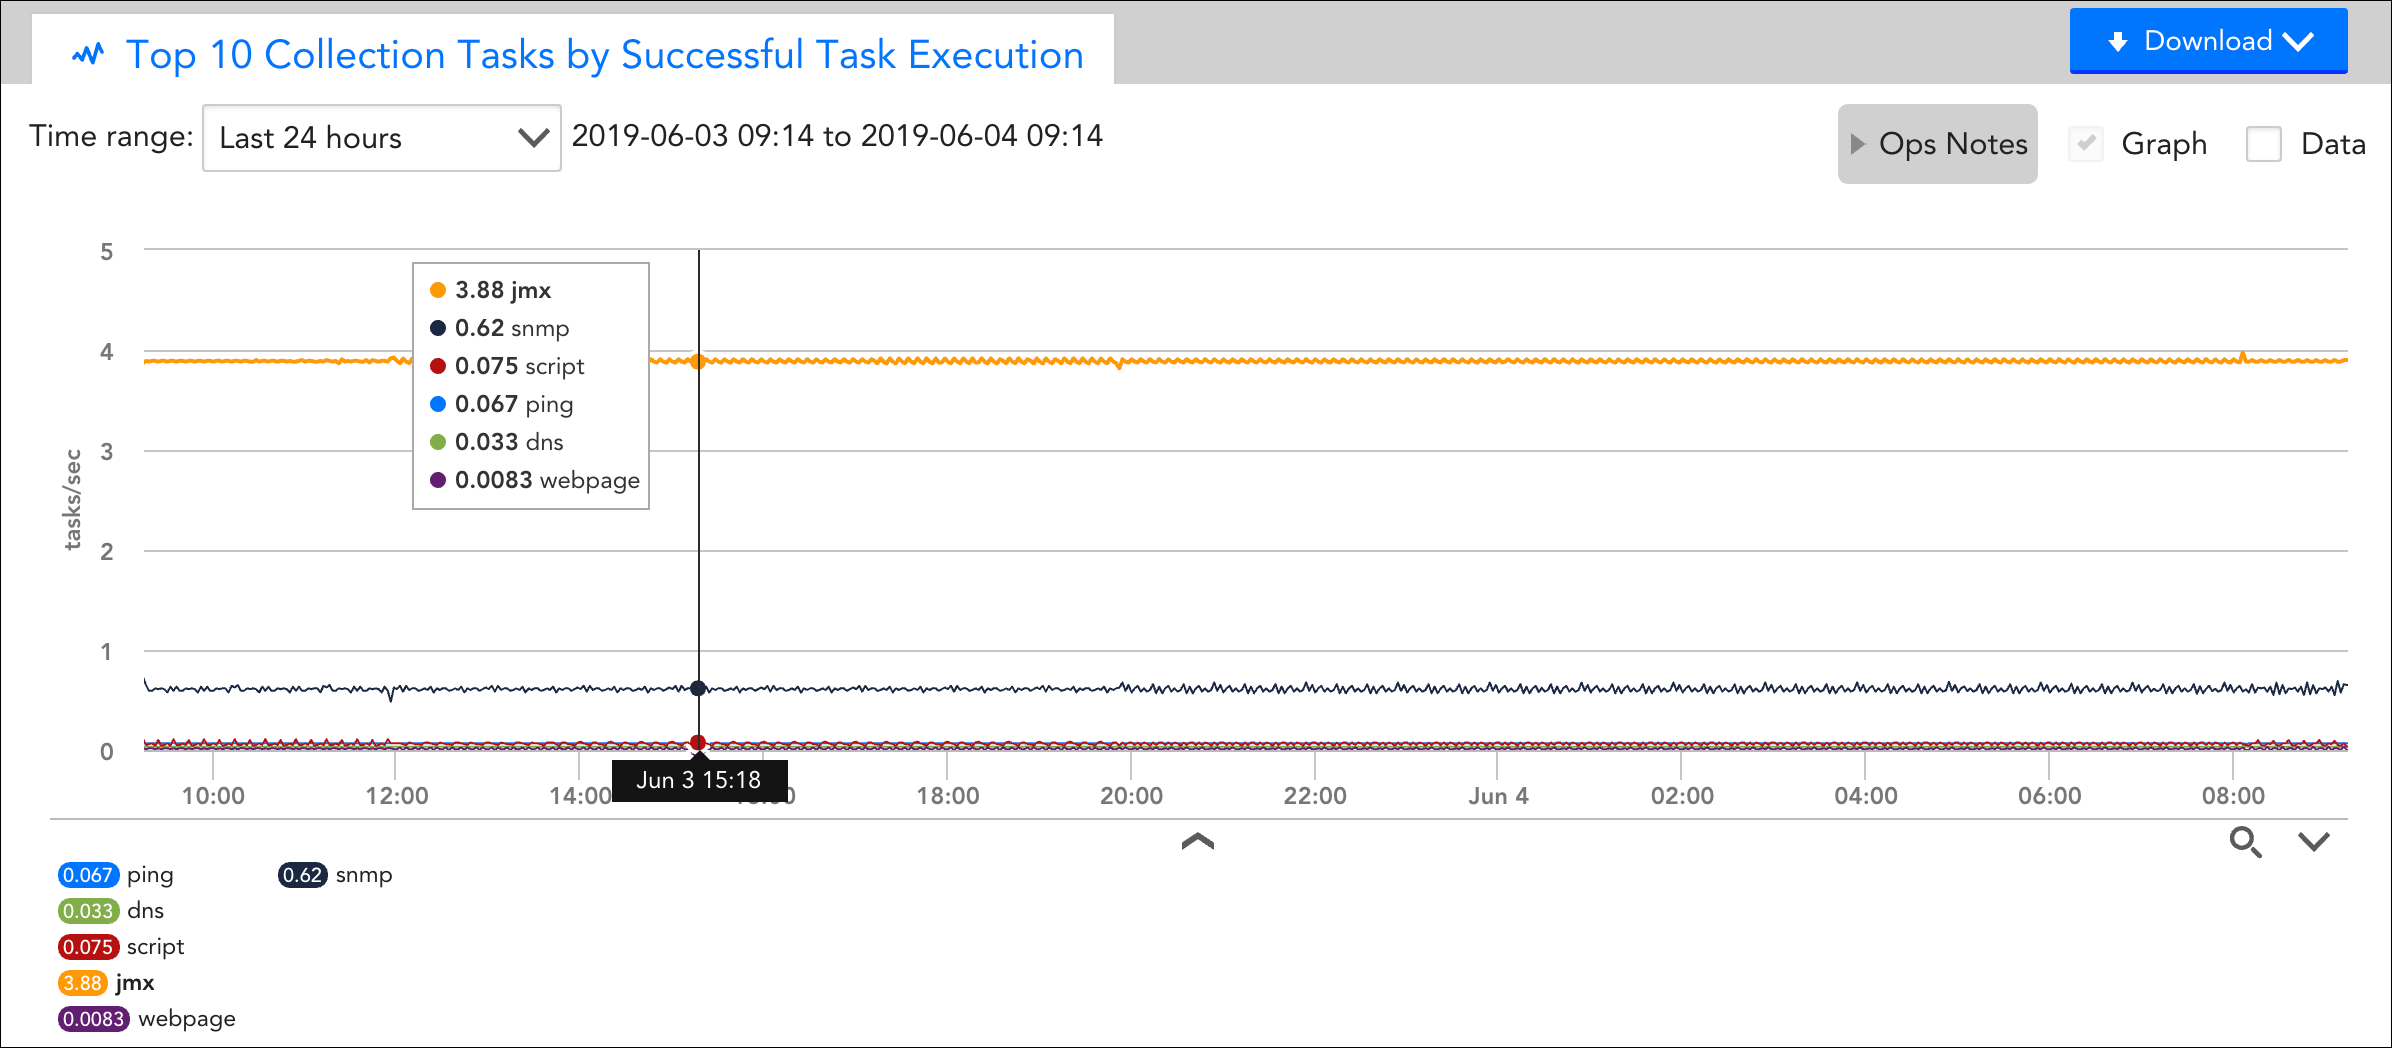 The Top 10 Collection Tasks overview graph is extremely useful for identifying the source of CPU or memory usage